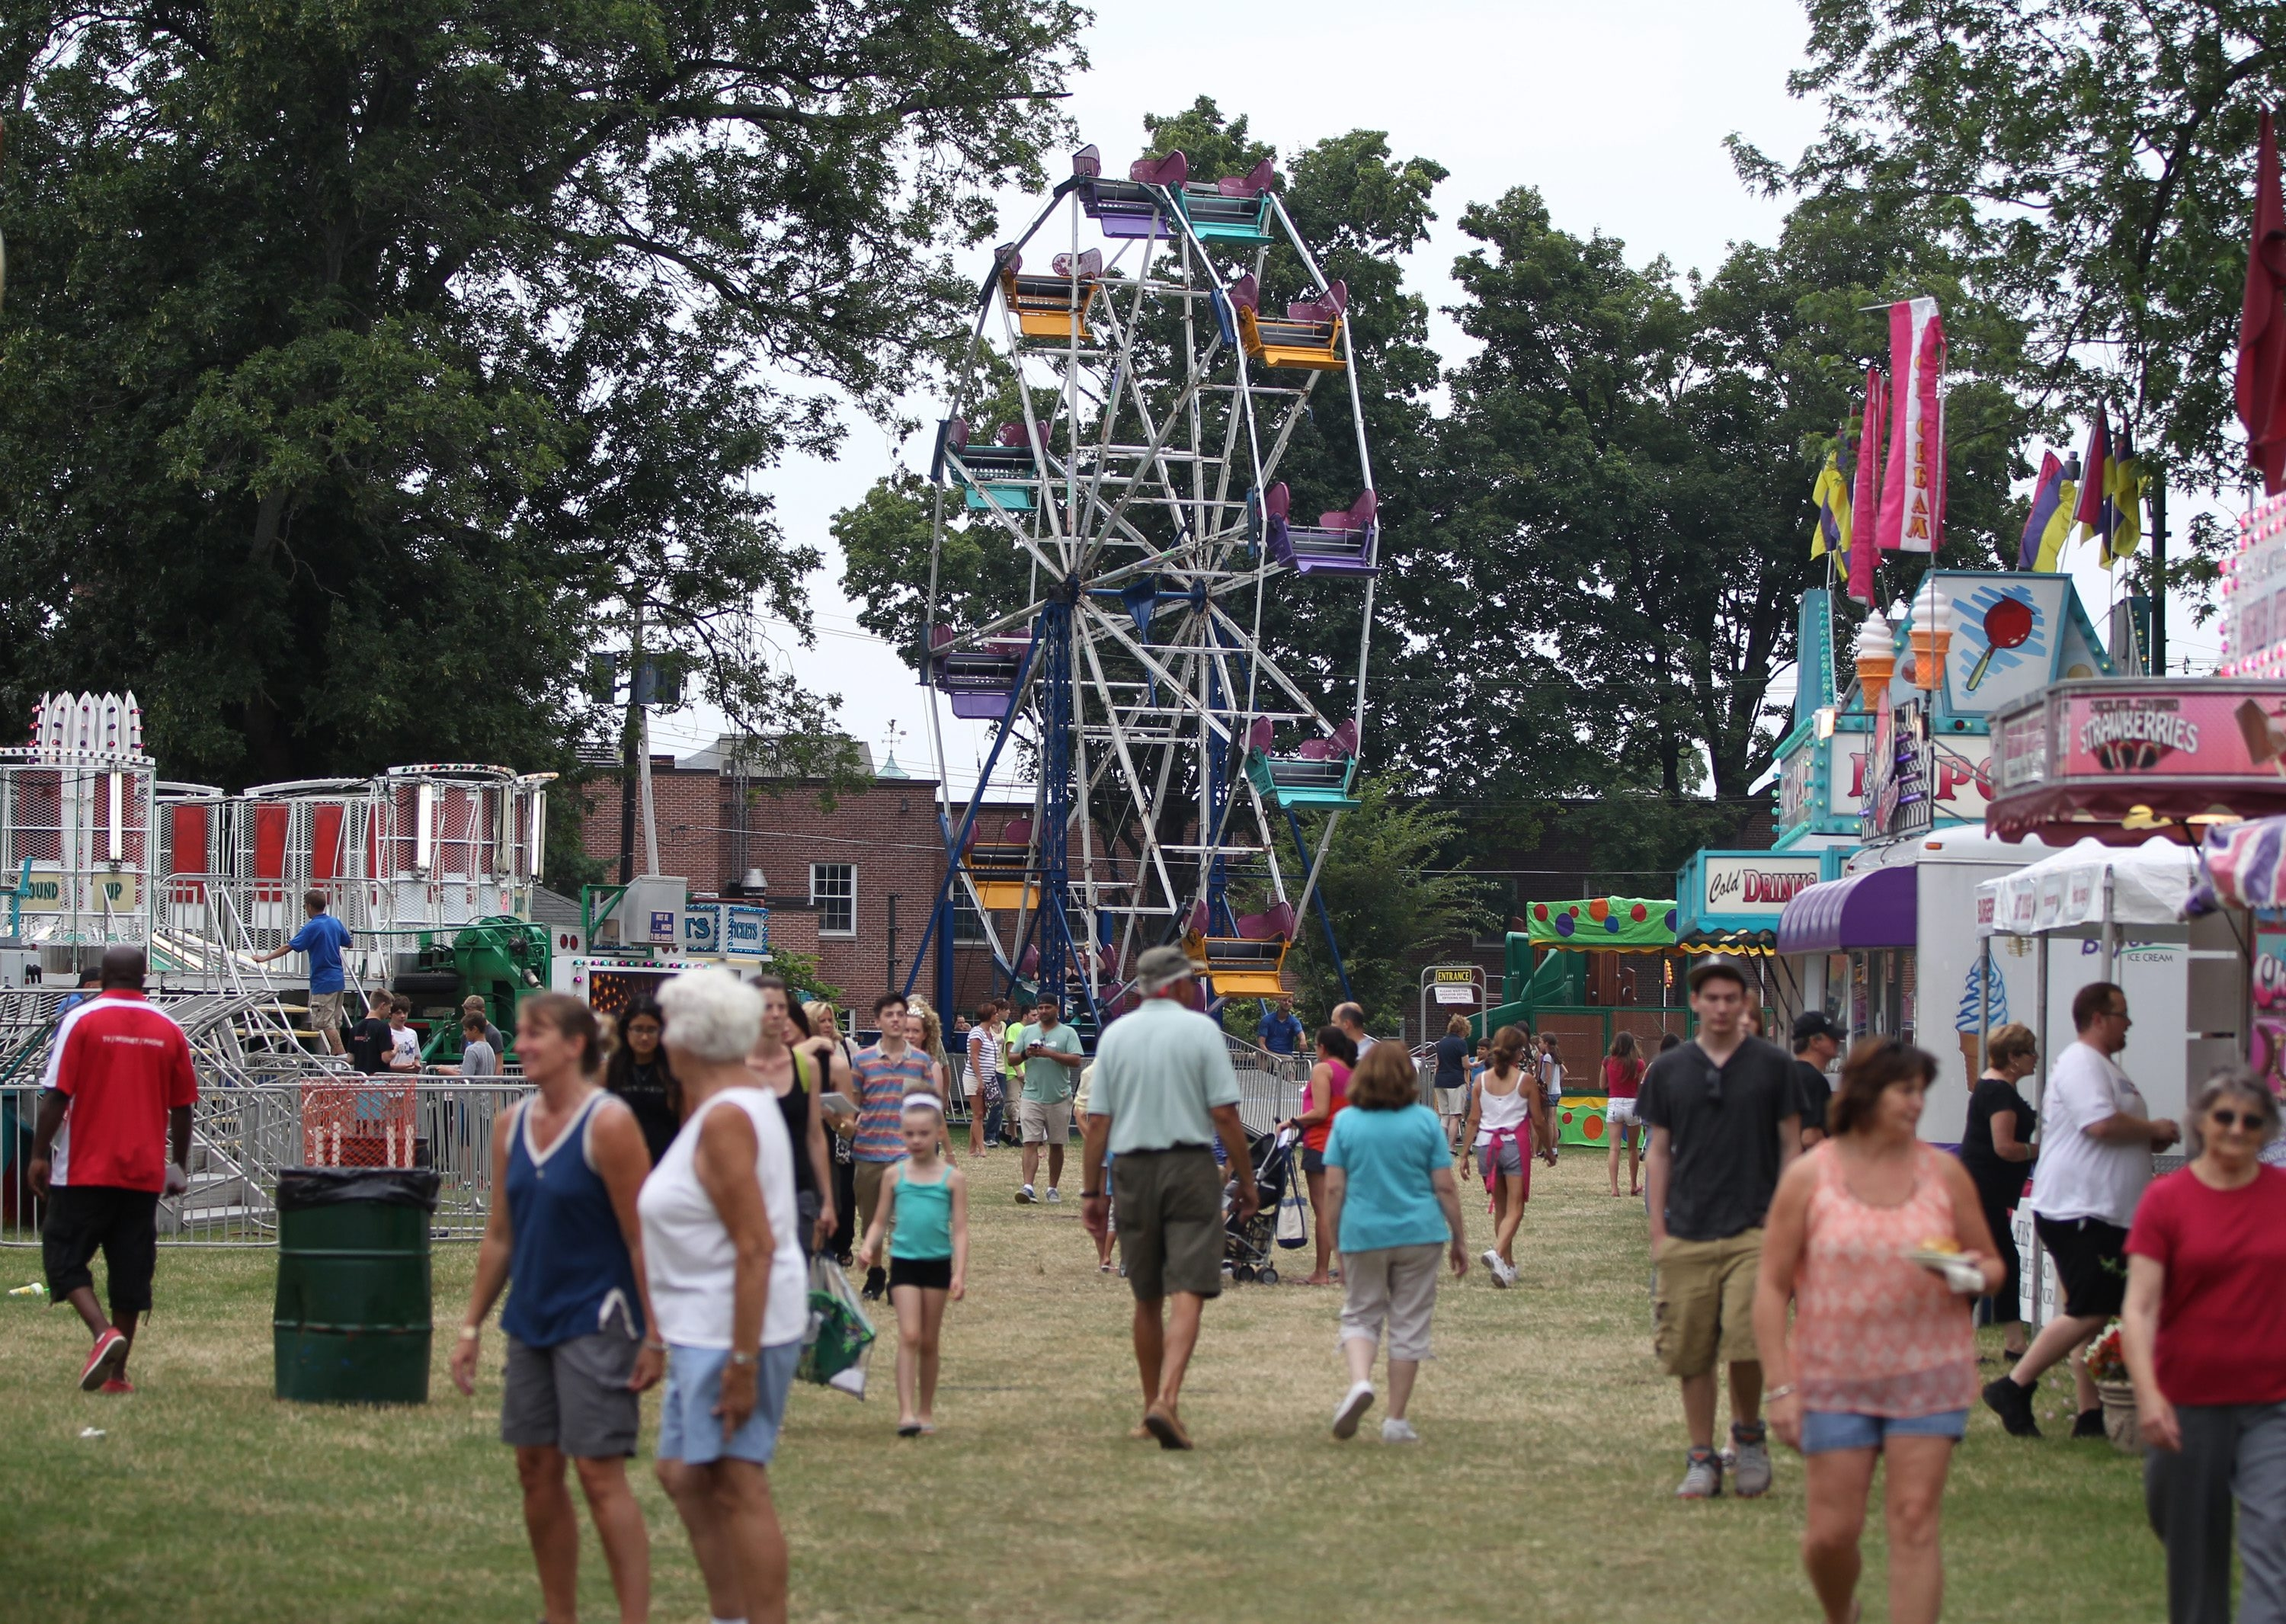 Old Home Days festival, which begins Tuesday in Williamsville, will have new rules this year, including an Island Park ban on under-16 youths after 6 p.m. if not with an adult.